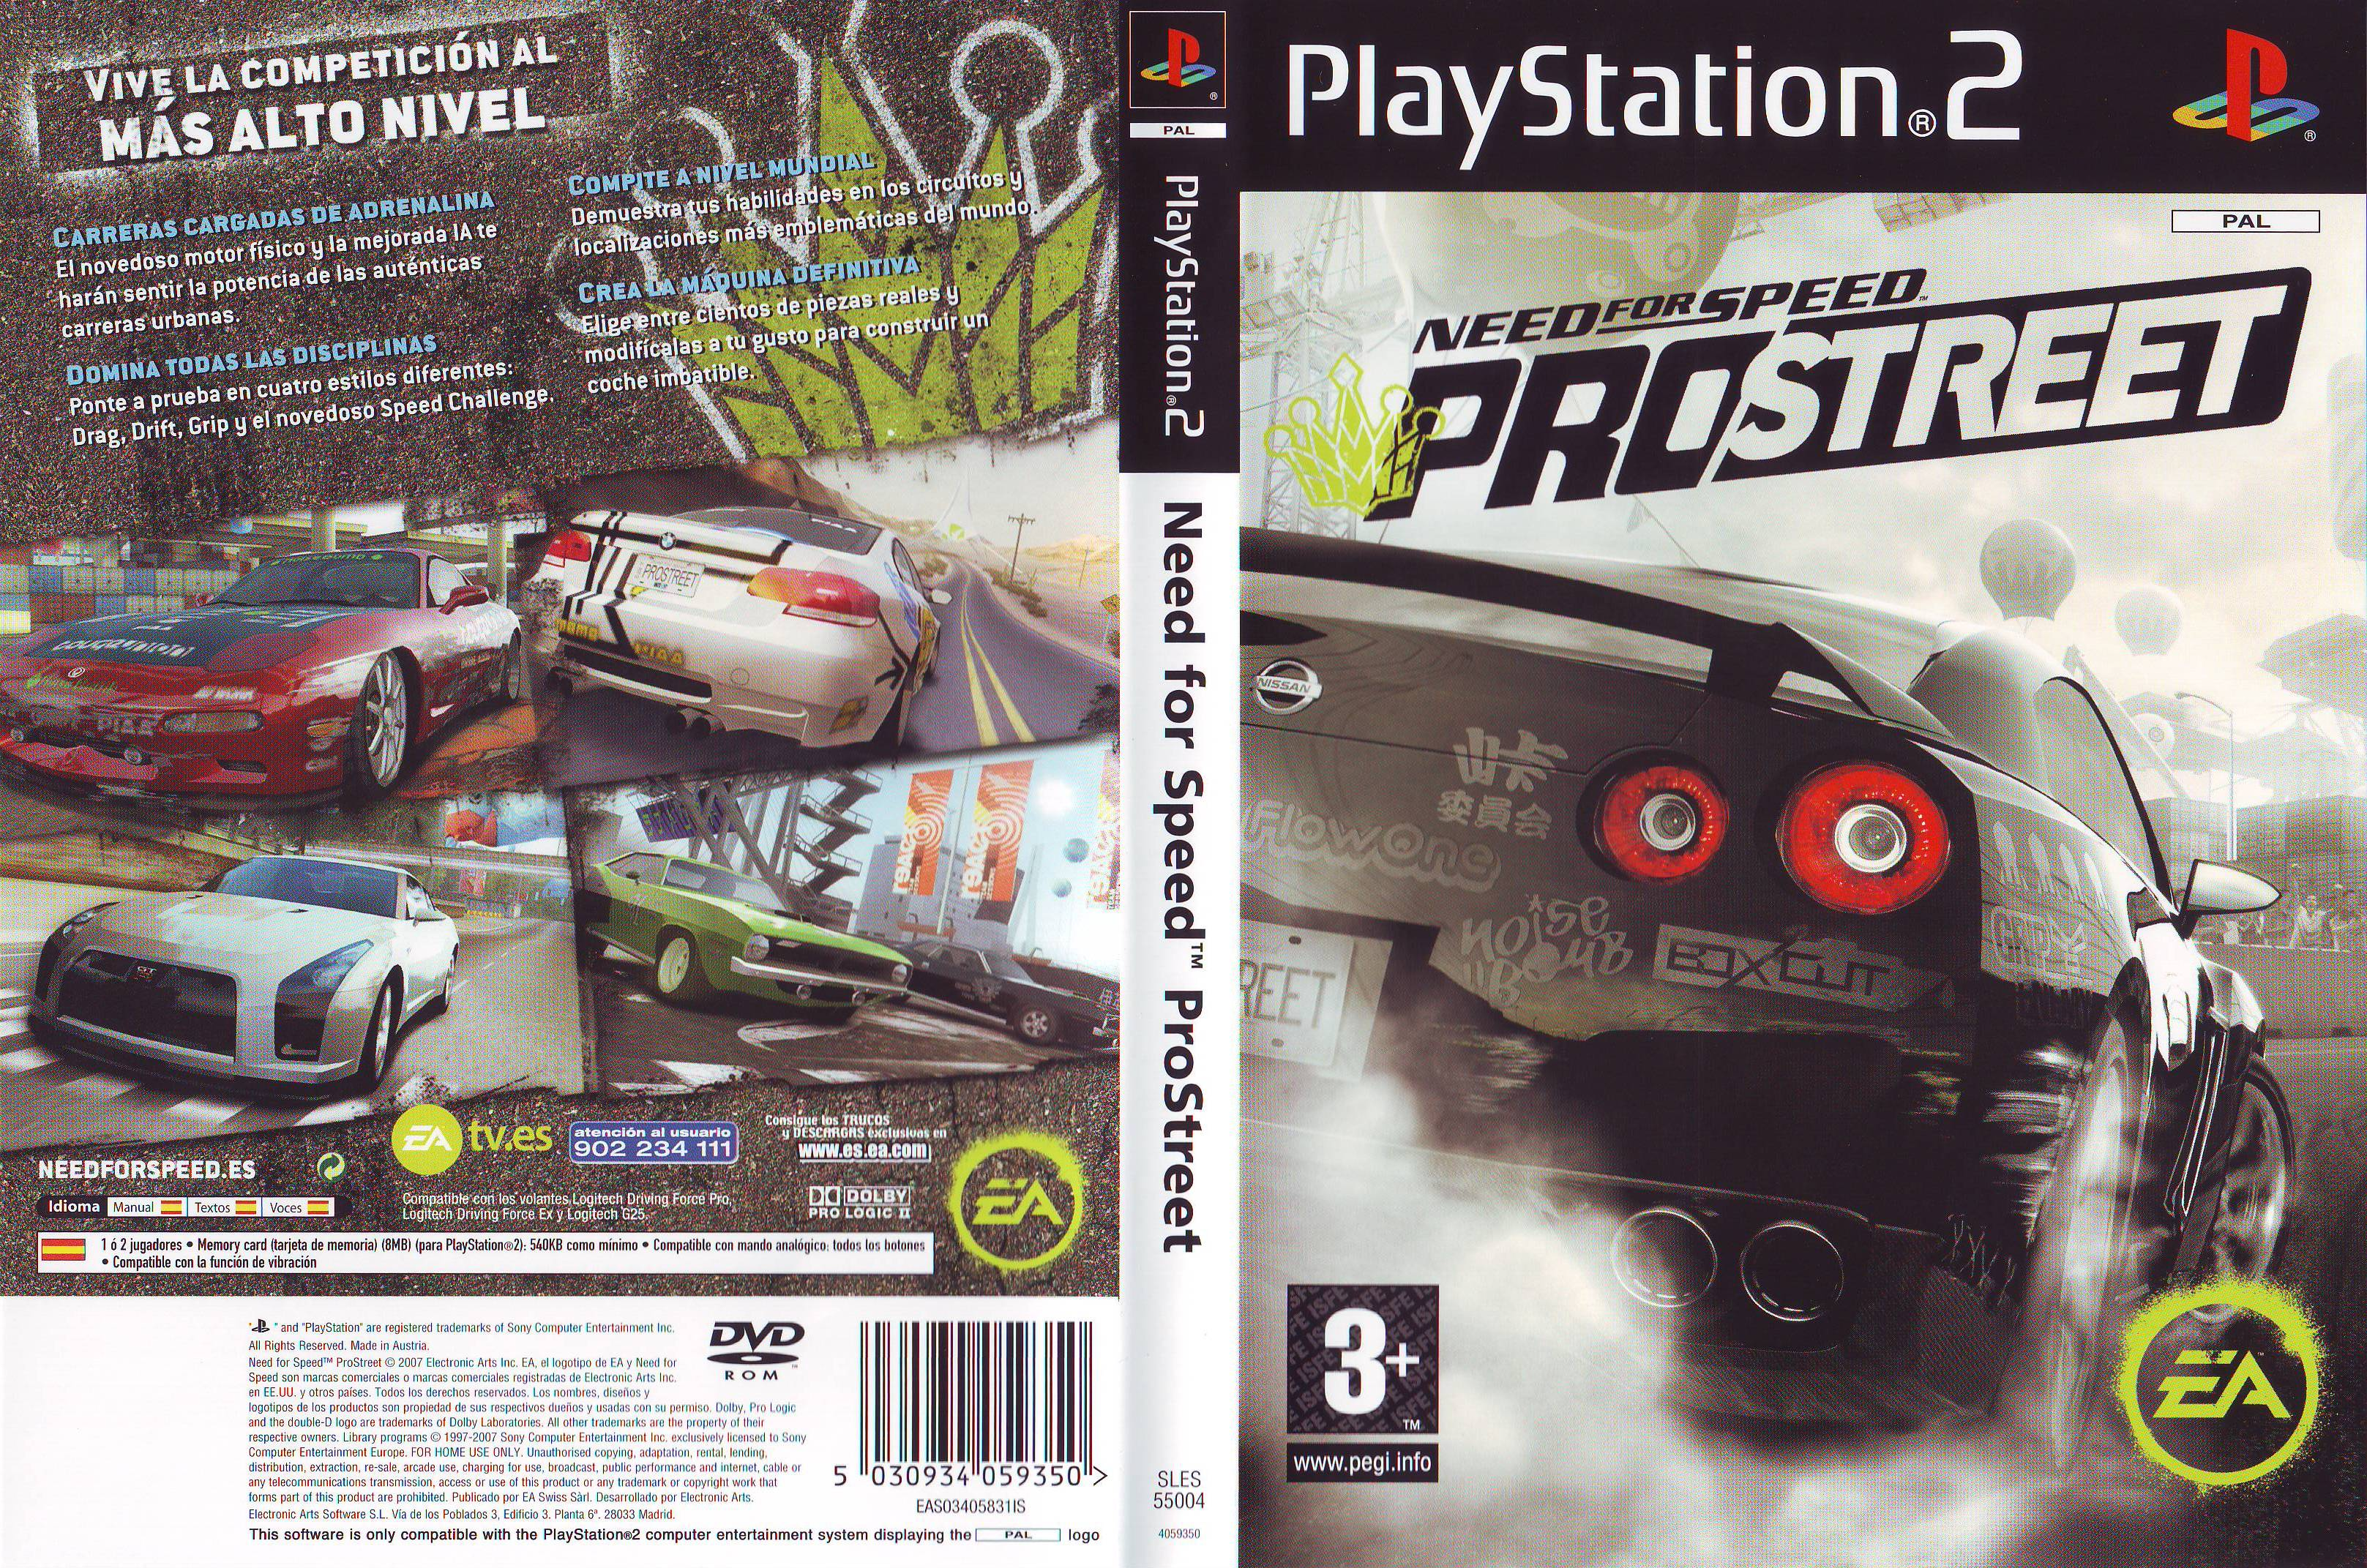 Need For Speed Pro Street [Ps2] [Espa?ol] - Identi Ps2 Need For Speed